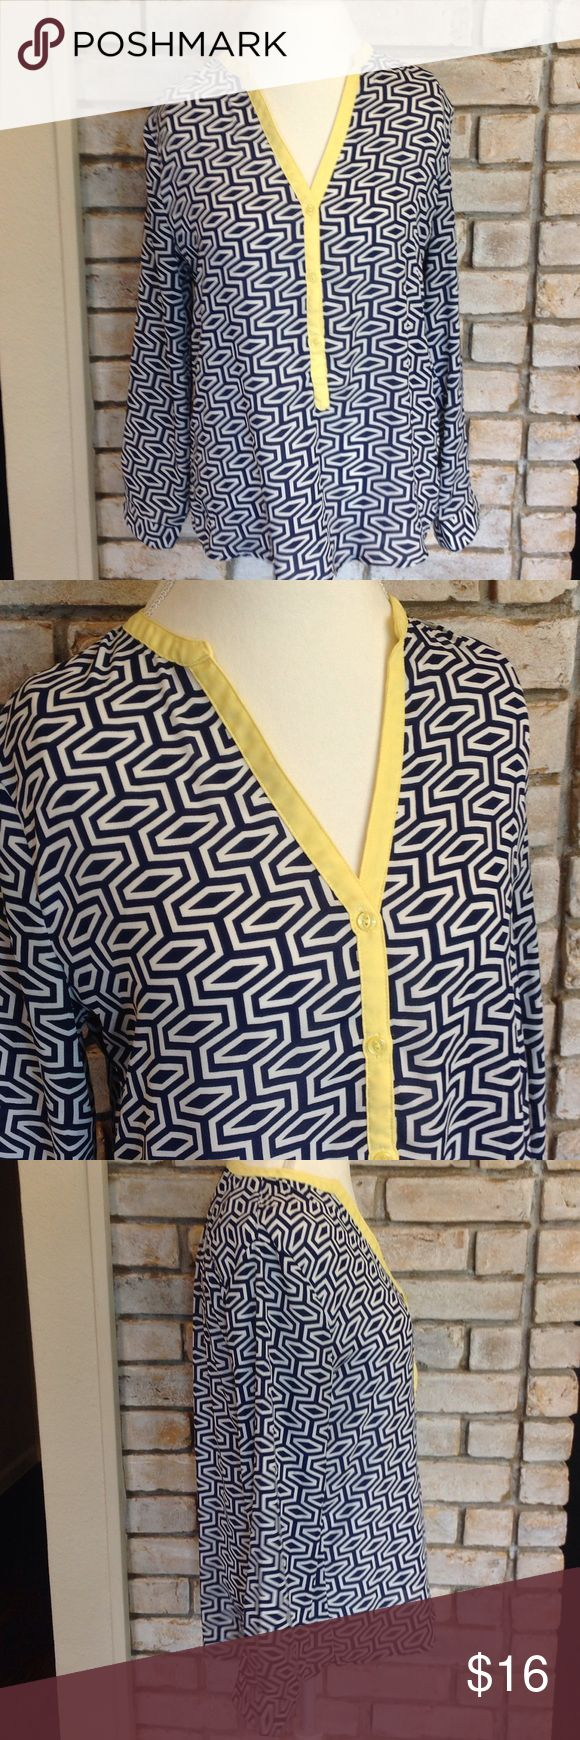 Beautiful Blue Geometric Blouse In perfect condition. Beautiful blue and white blouse with yellow accent. No holes or stains. Blouse measures 23 inches in the front and 27 inches in the back. 100% polyester. Francesca's Collections Tops Blouses